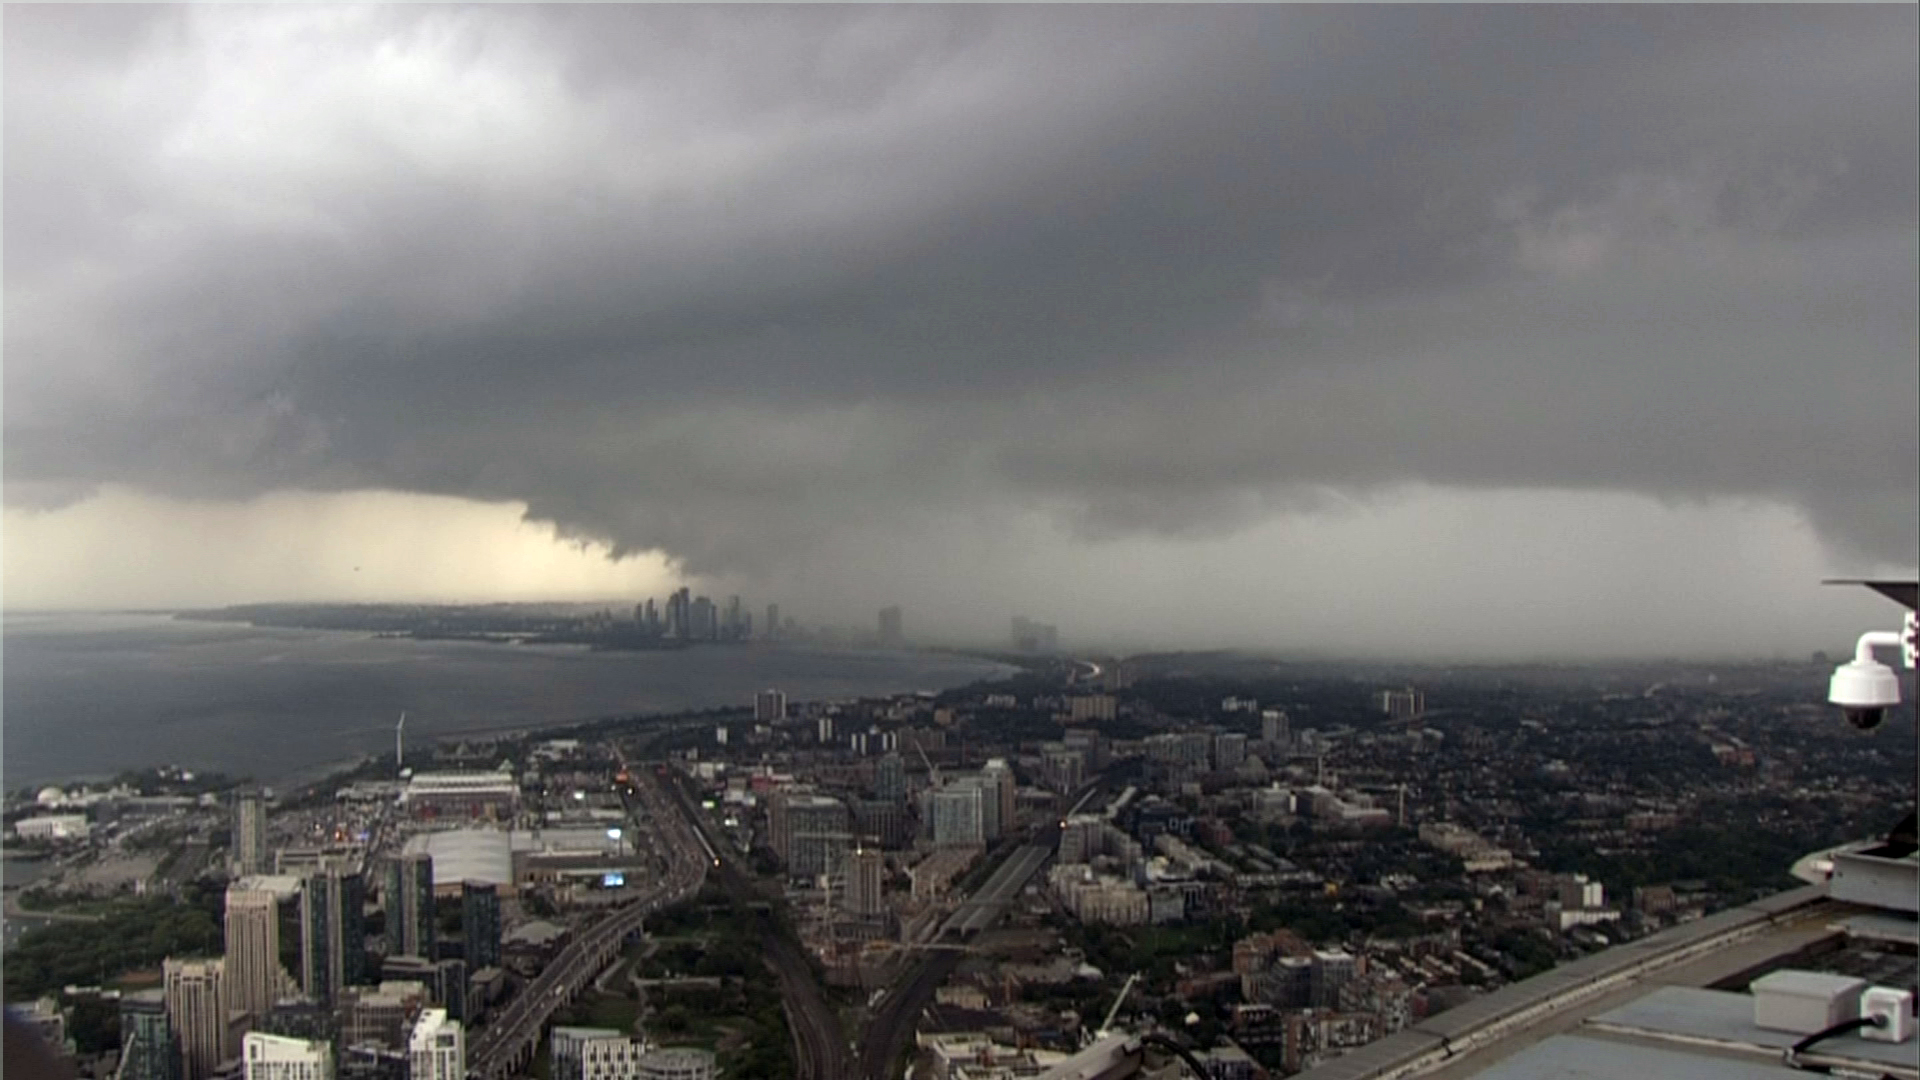 gta thunderstorm strong wind gusts possible